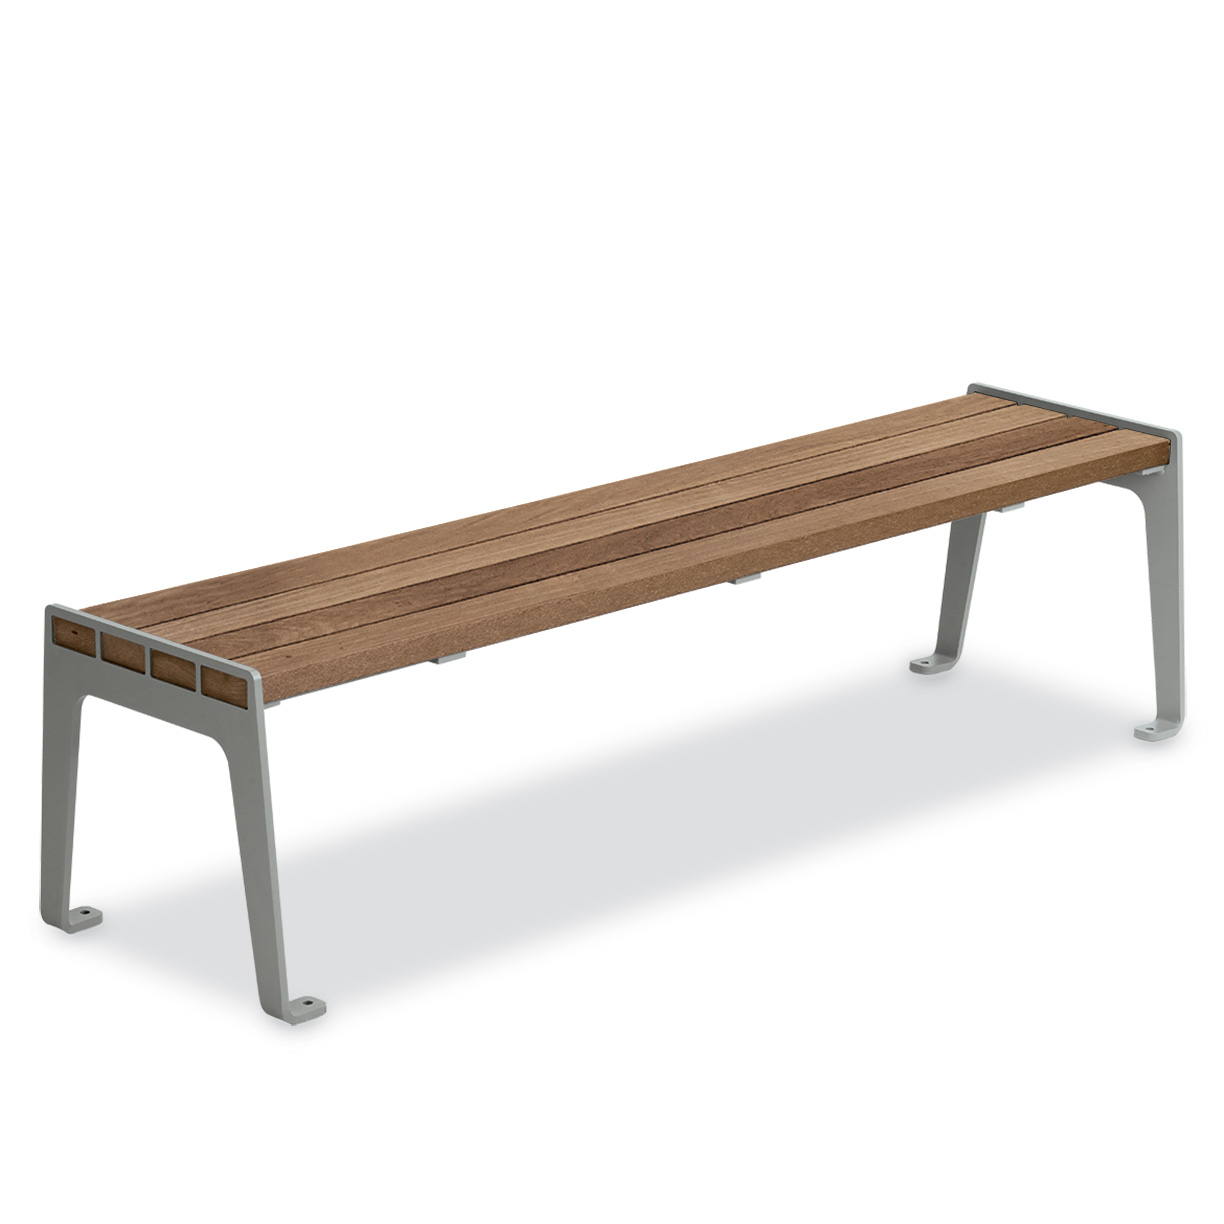 THMF6  Madison Collection Thermony Slat 6' Flat Bench